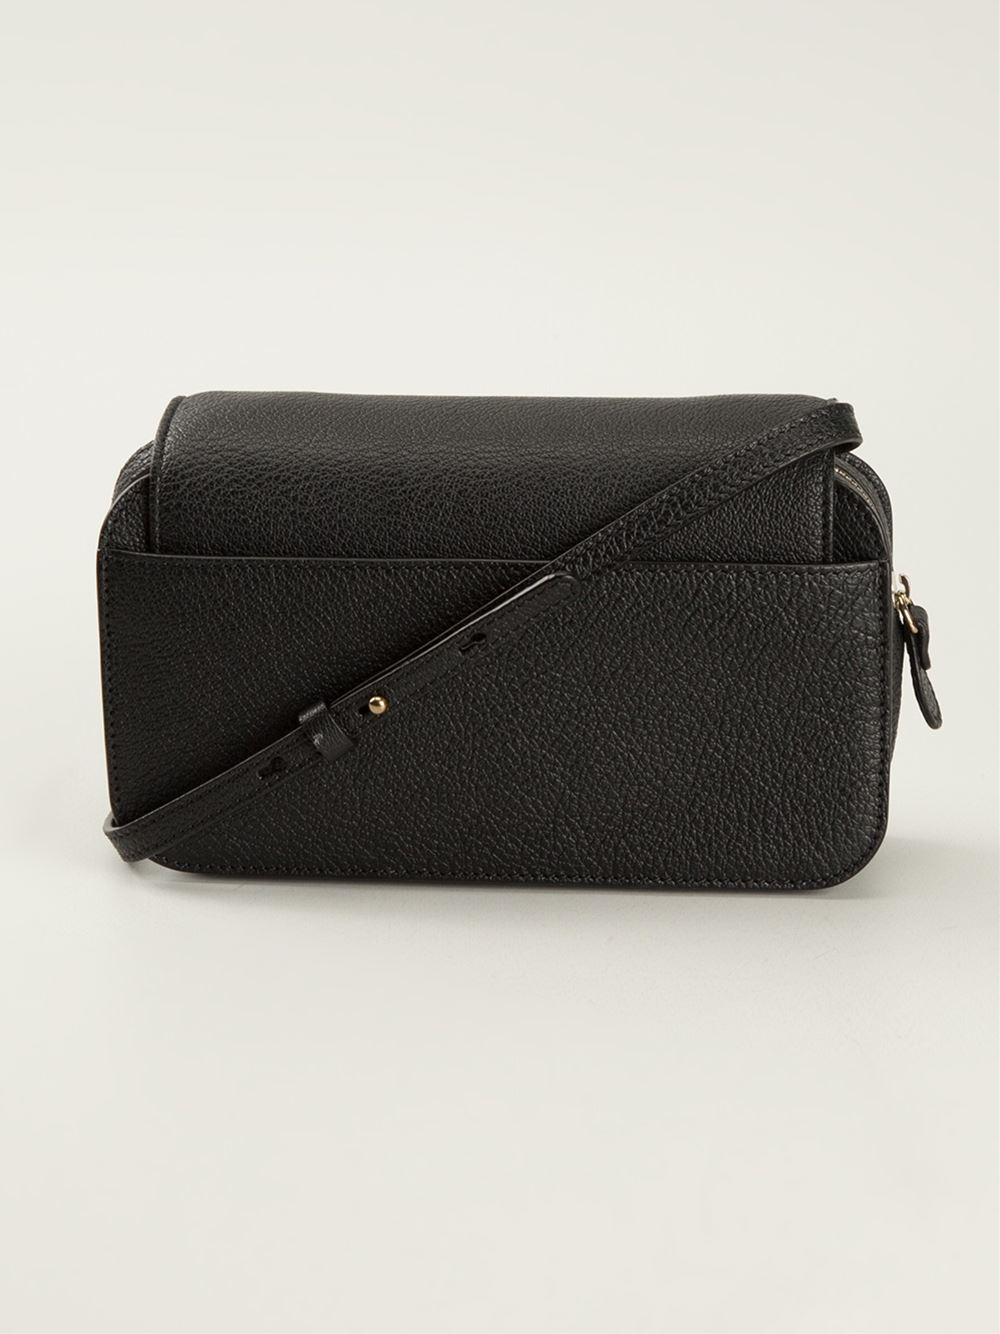 Chlo�� \u0026#39;Elsie\u0026#39; Cross Body Bag in Black | Lyst